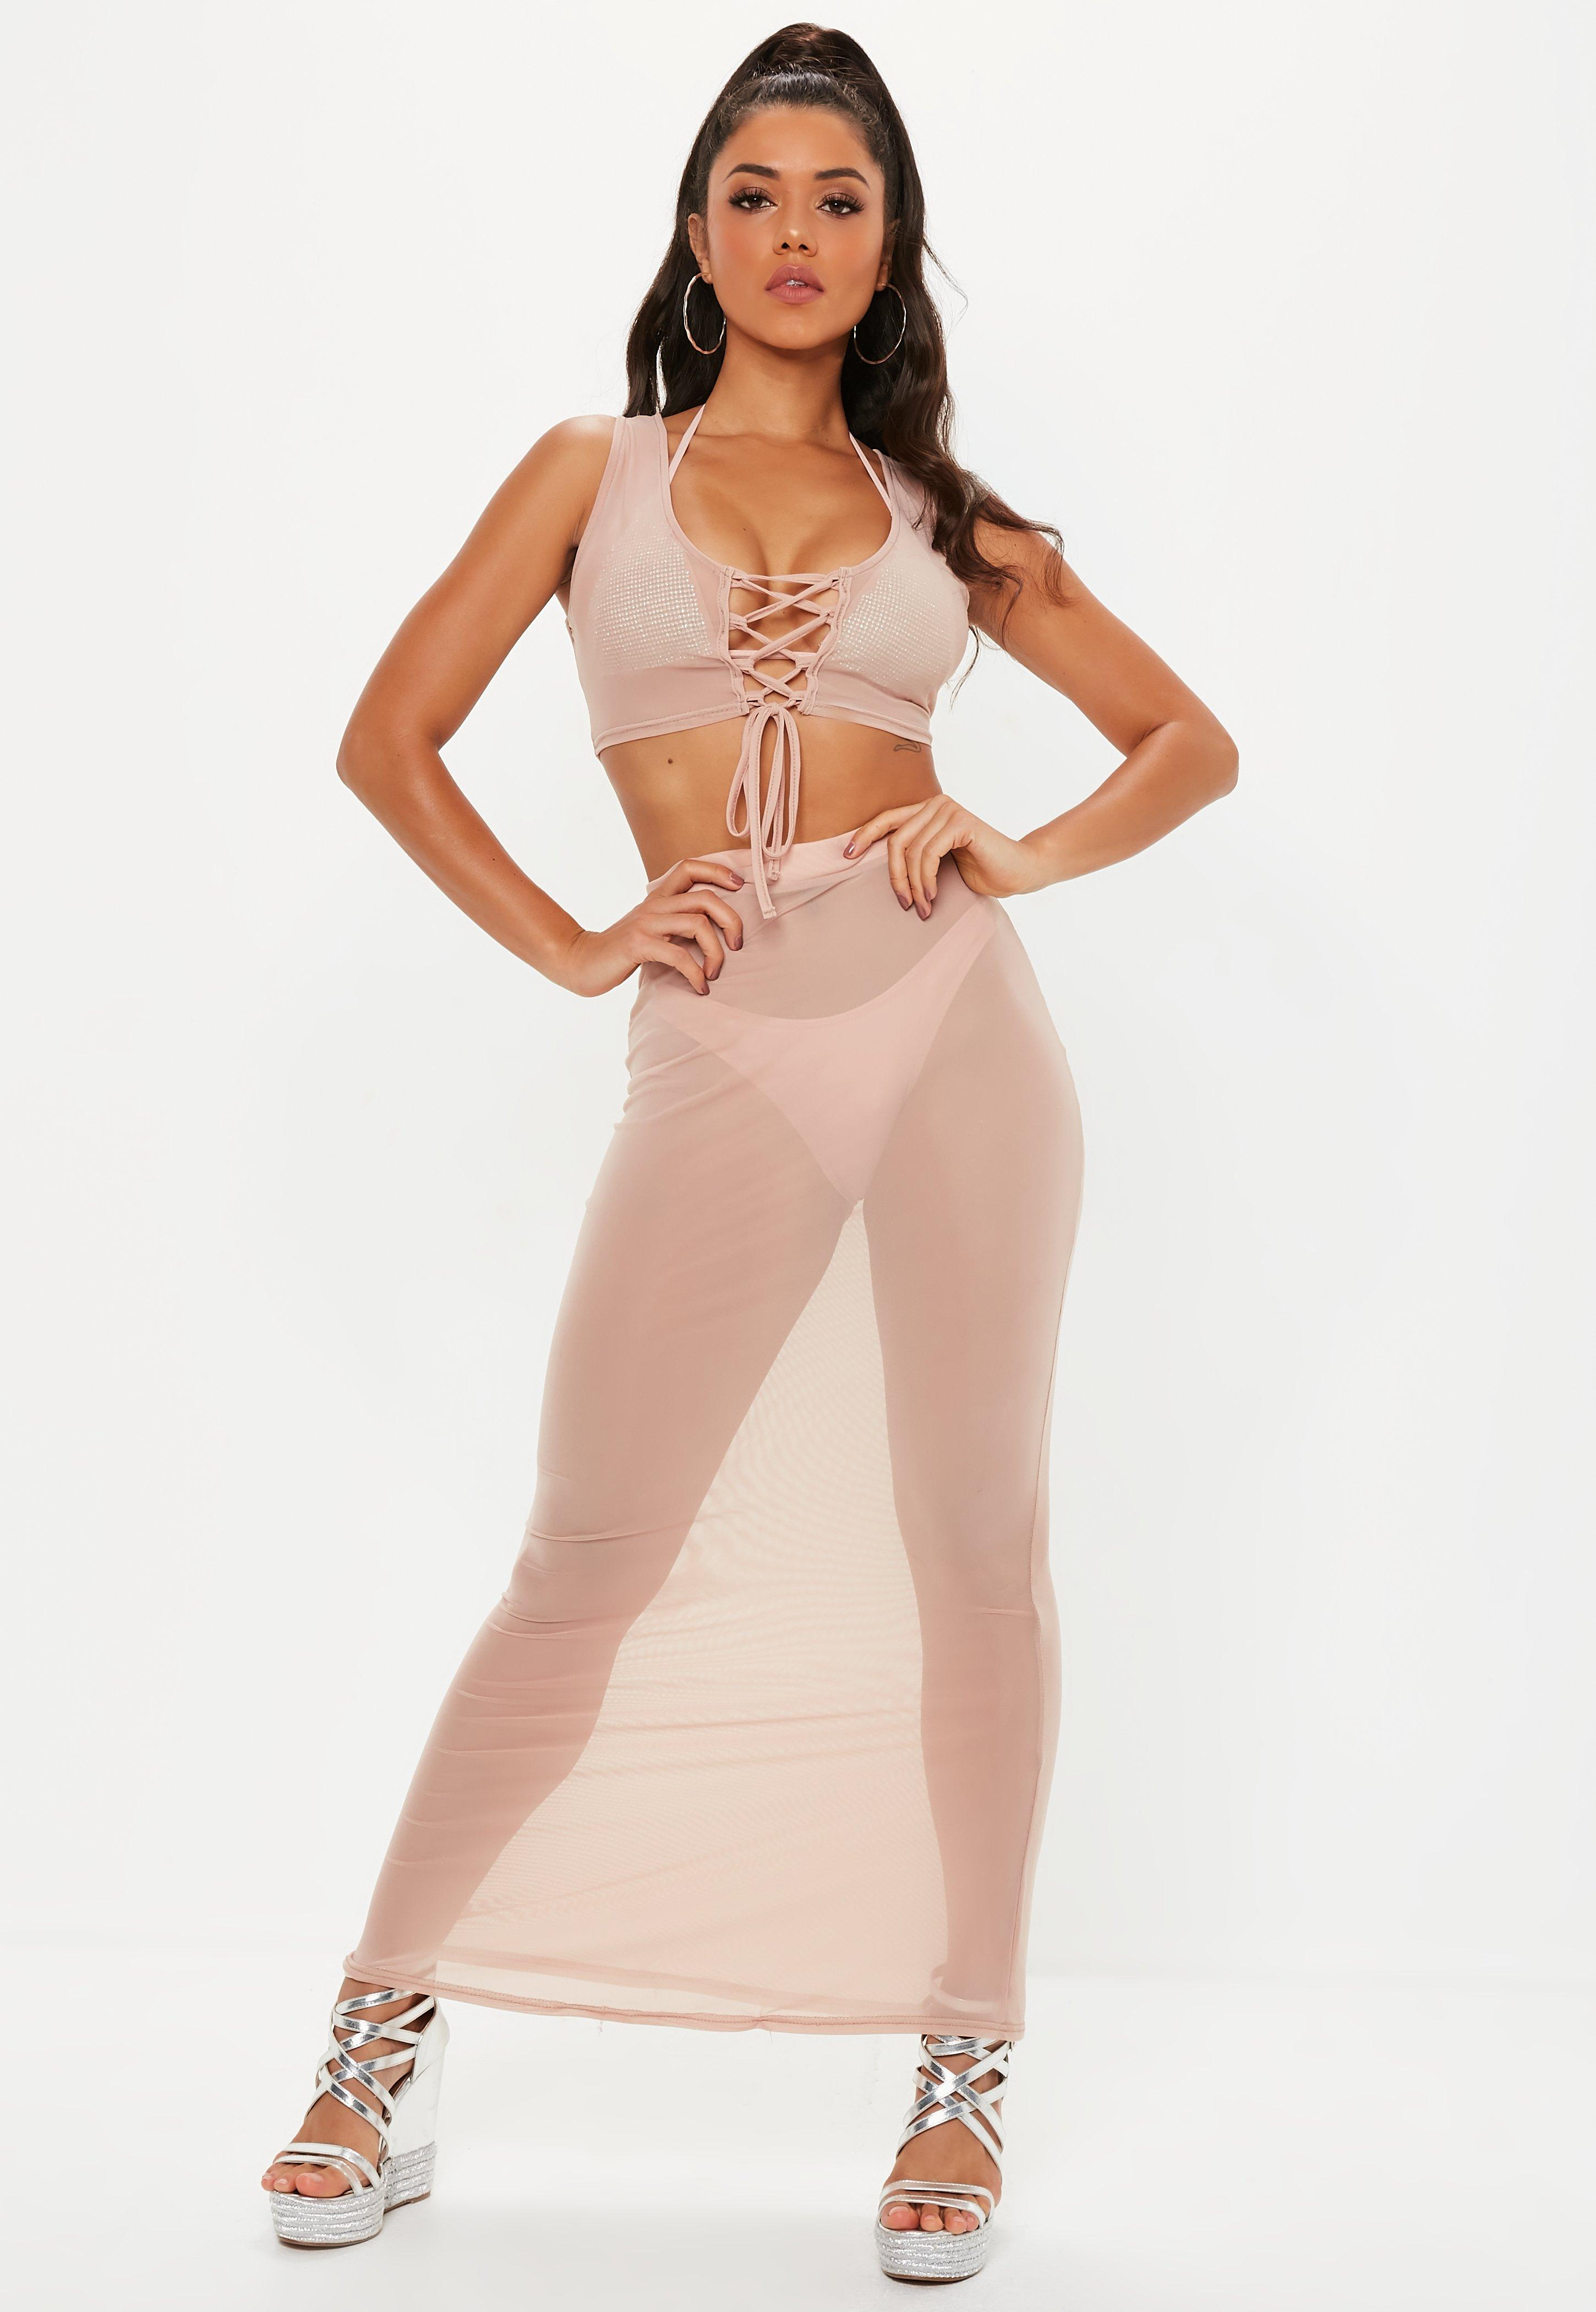 dbbd038d531 Lyst - Missguided Nude Mesh Lace Up Vest in Natural